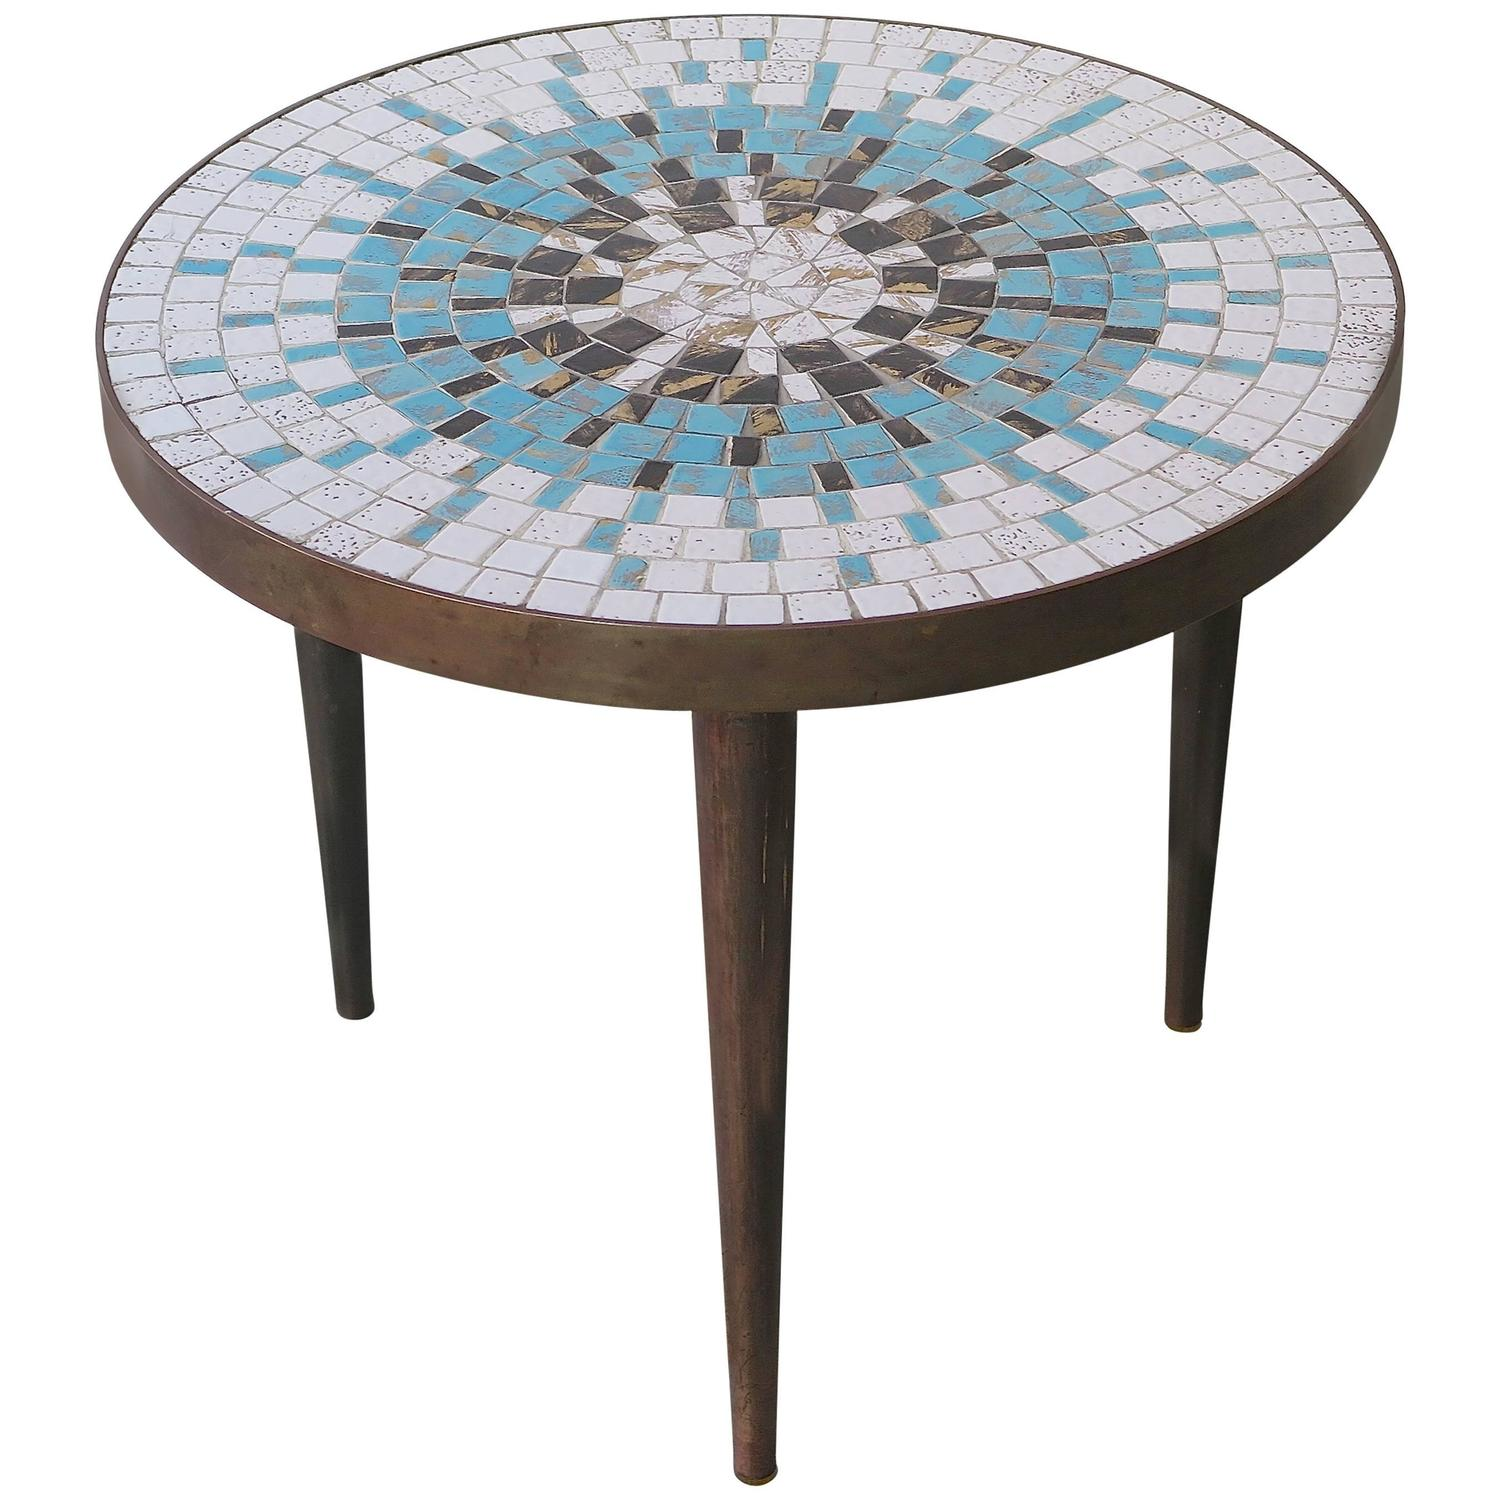 Small Midcentury Mosaic Table By Luberto For Sale At 1stdibs. Antique School Desks. Treatmill Desk. Kids Desk Furniture. Realspace Mezza Desk. Talent Desk Jobs. Billy Desk Ikea. Ergo Desks. Foldaway Desk